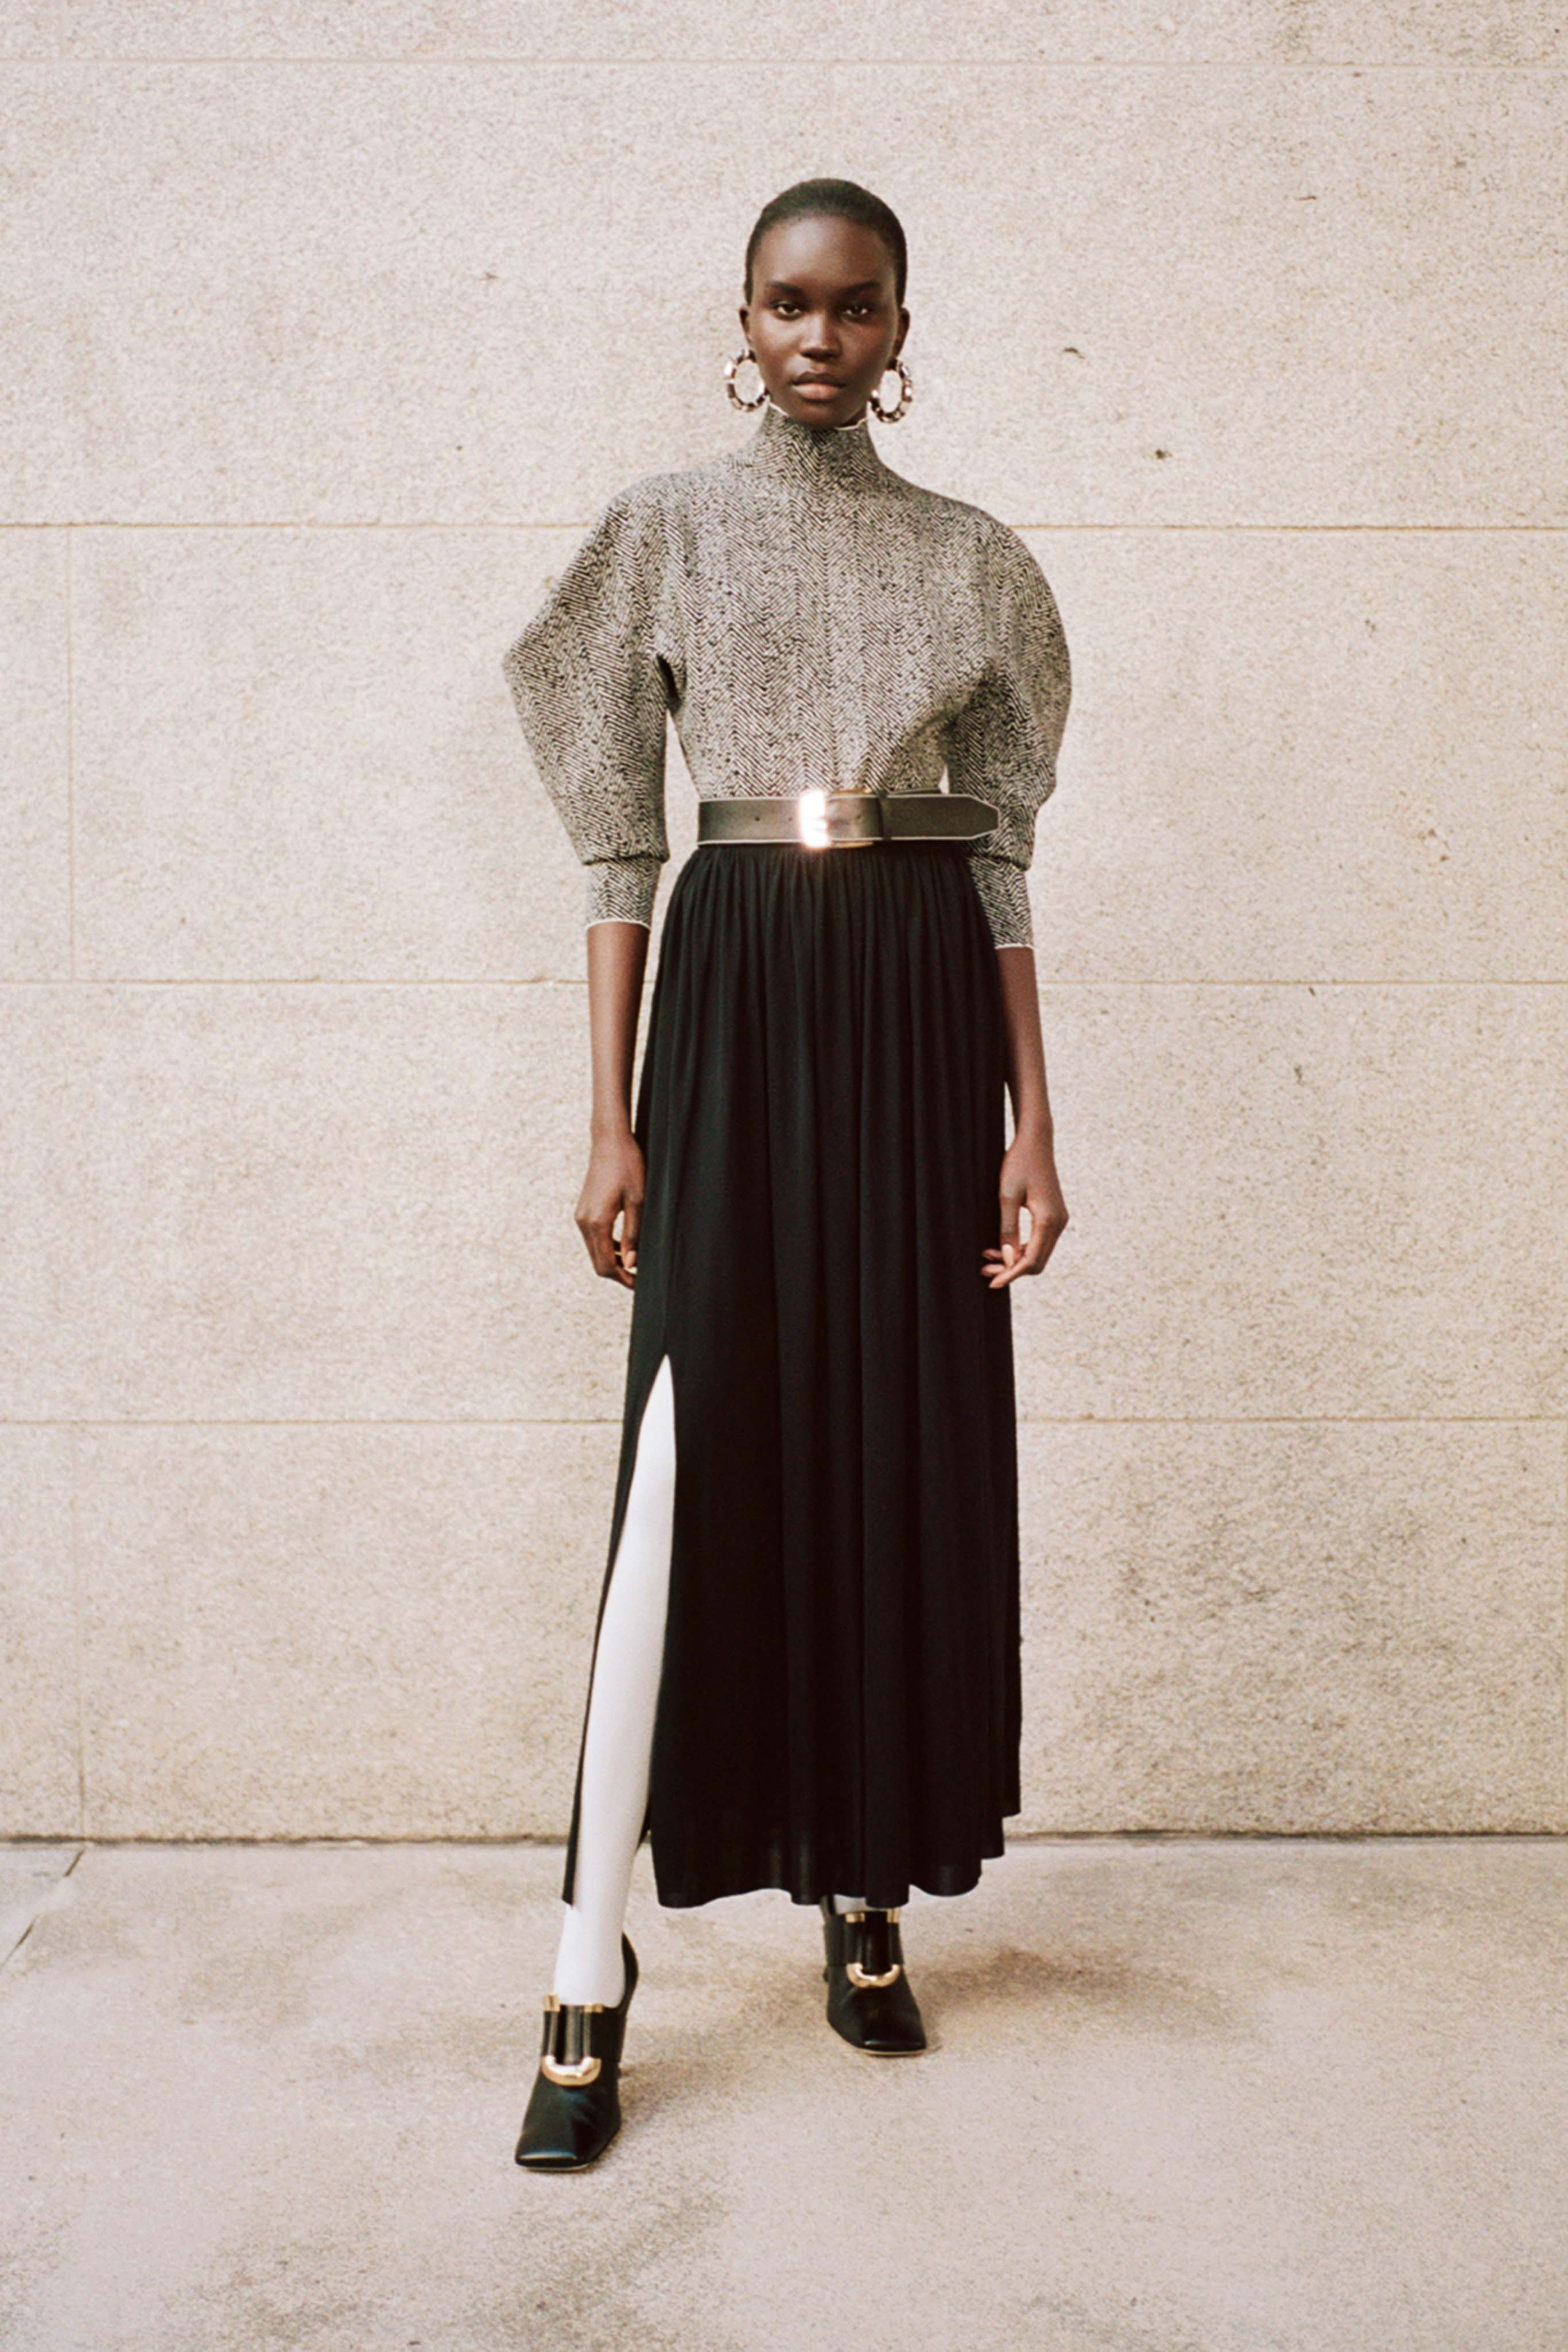 PROENZA SCHOULER Pre fall 2020 Lookbook trends runway coverage Ready To Wear Vogue skirt with slit